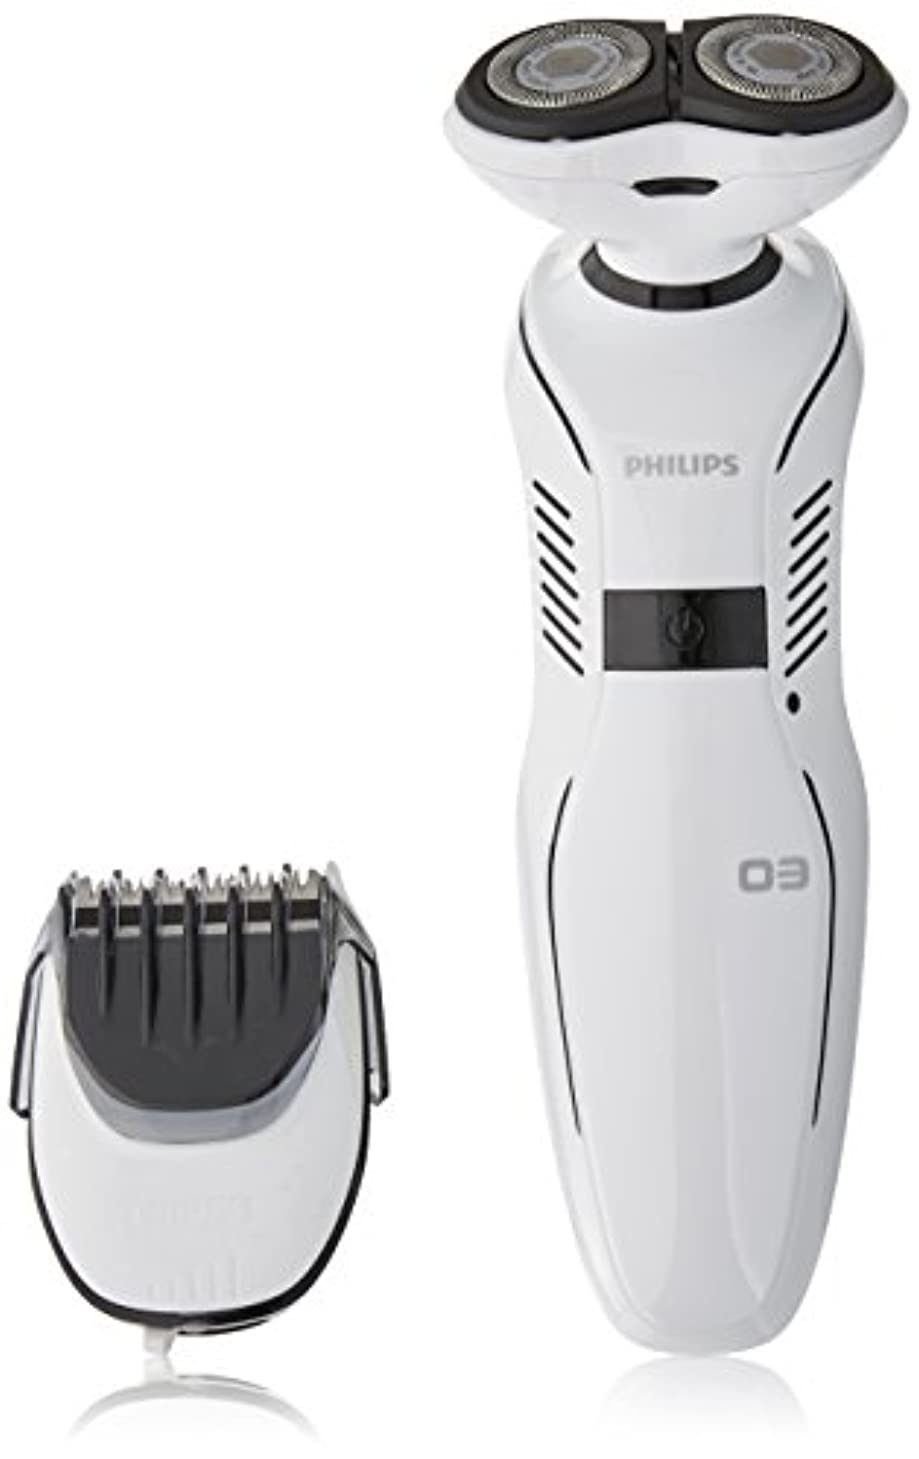 ウォーターフロント急流スイングPhilips Norelco Special Edition Star Wars Storm Trooper Wet & Dry Electric Shaver & Styler, SW175/81